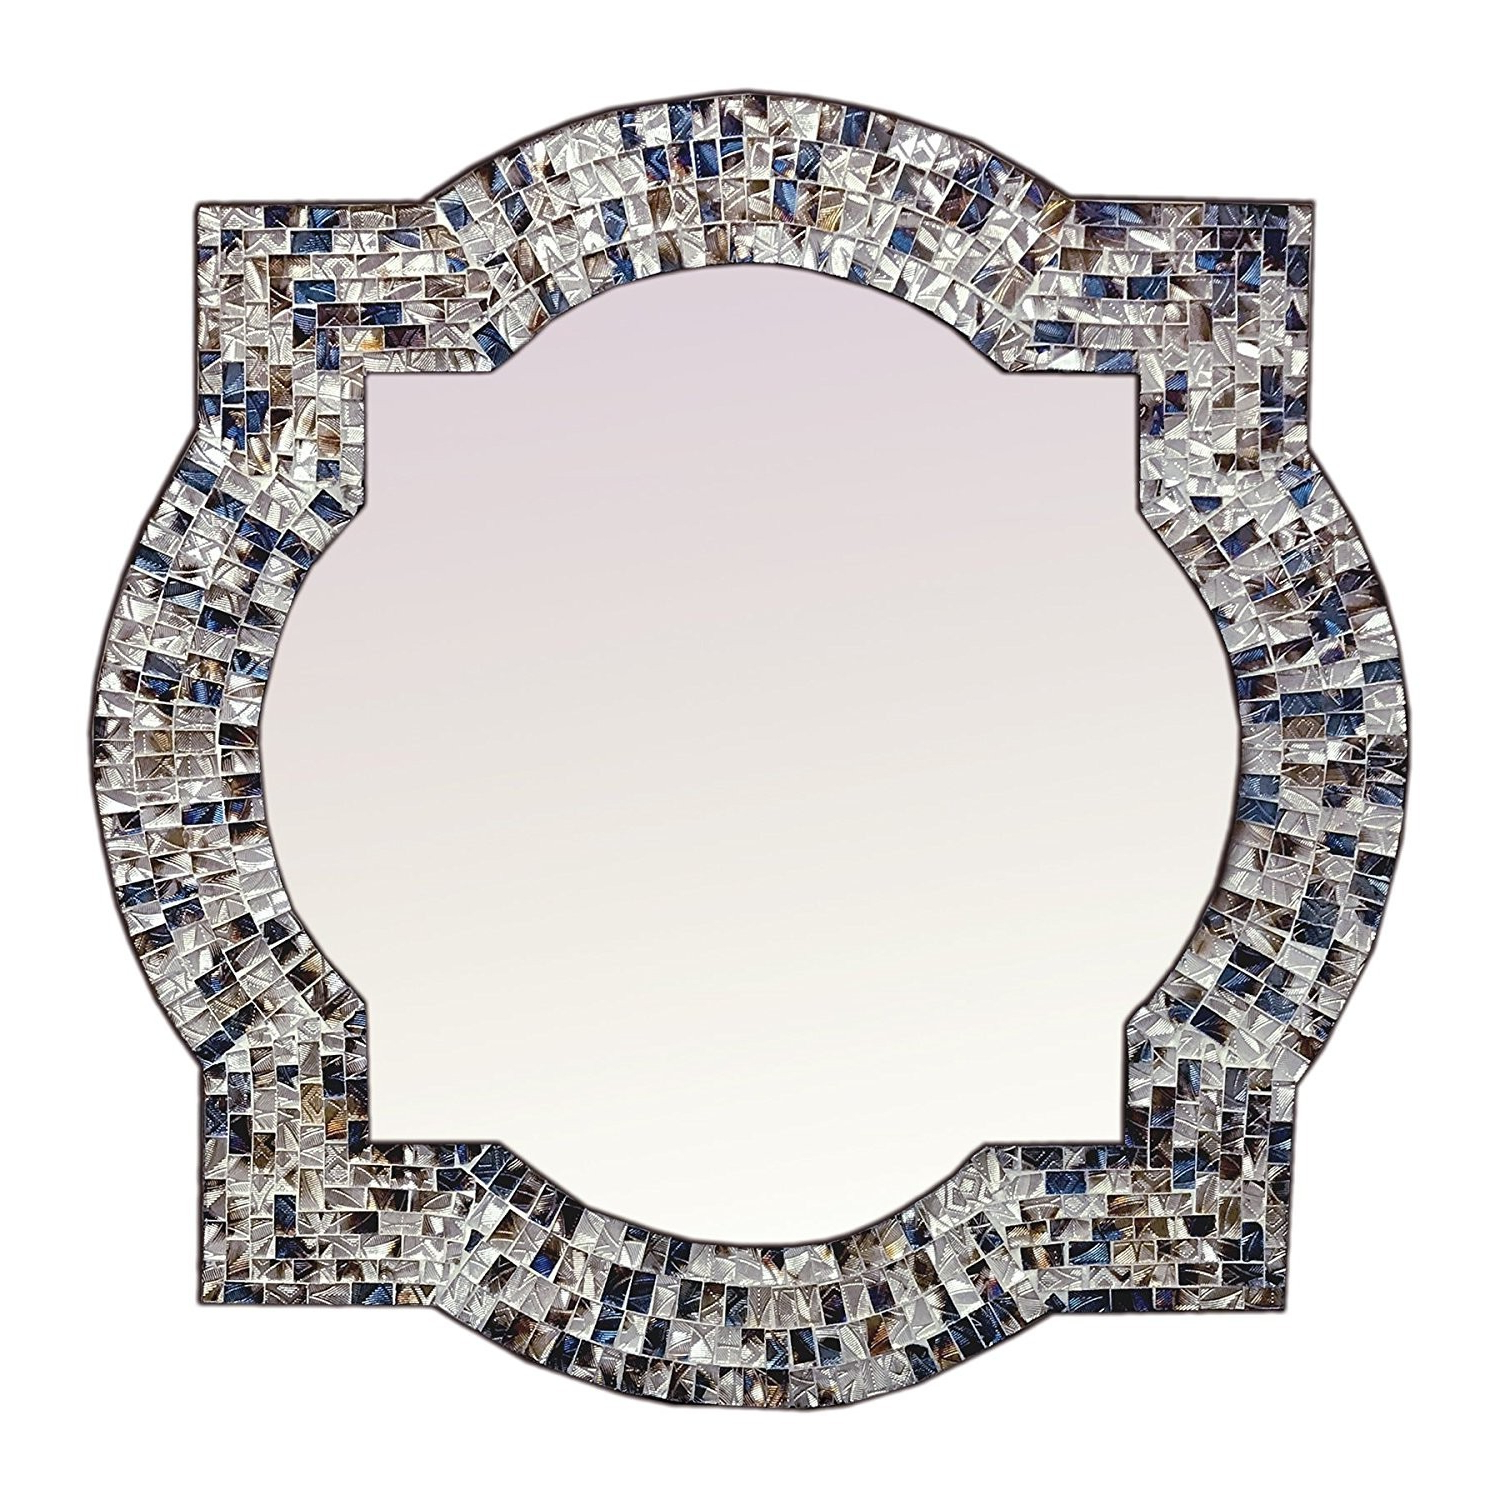 """Most Recently Released Glass Mosaic Wall Mirrors Regarding Andalusian Quatrefoil Mirror, Lindaraja Designer Mosaic Glass Framed Wall Mirror, 24""""x24"""" Colorful Wall Mirror (Multi Silver) (View 20 of 20)"""